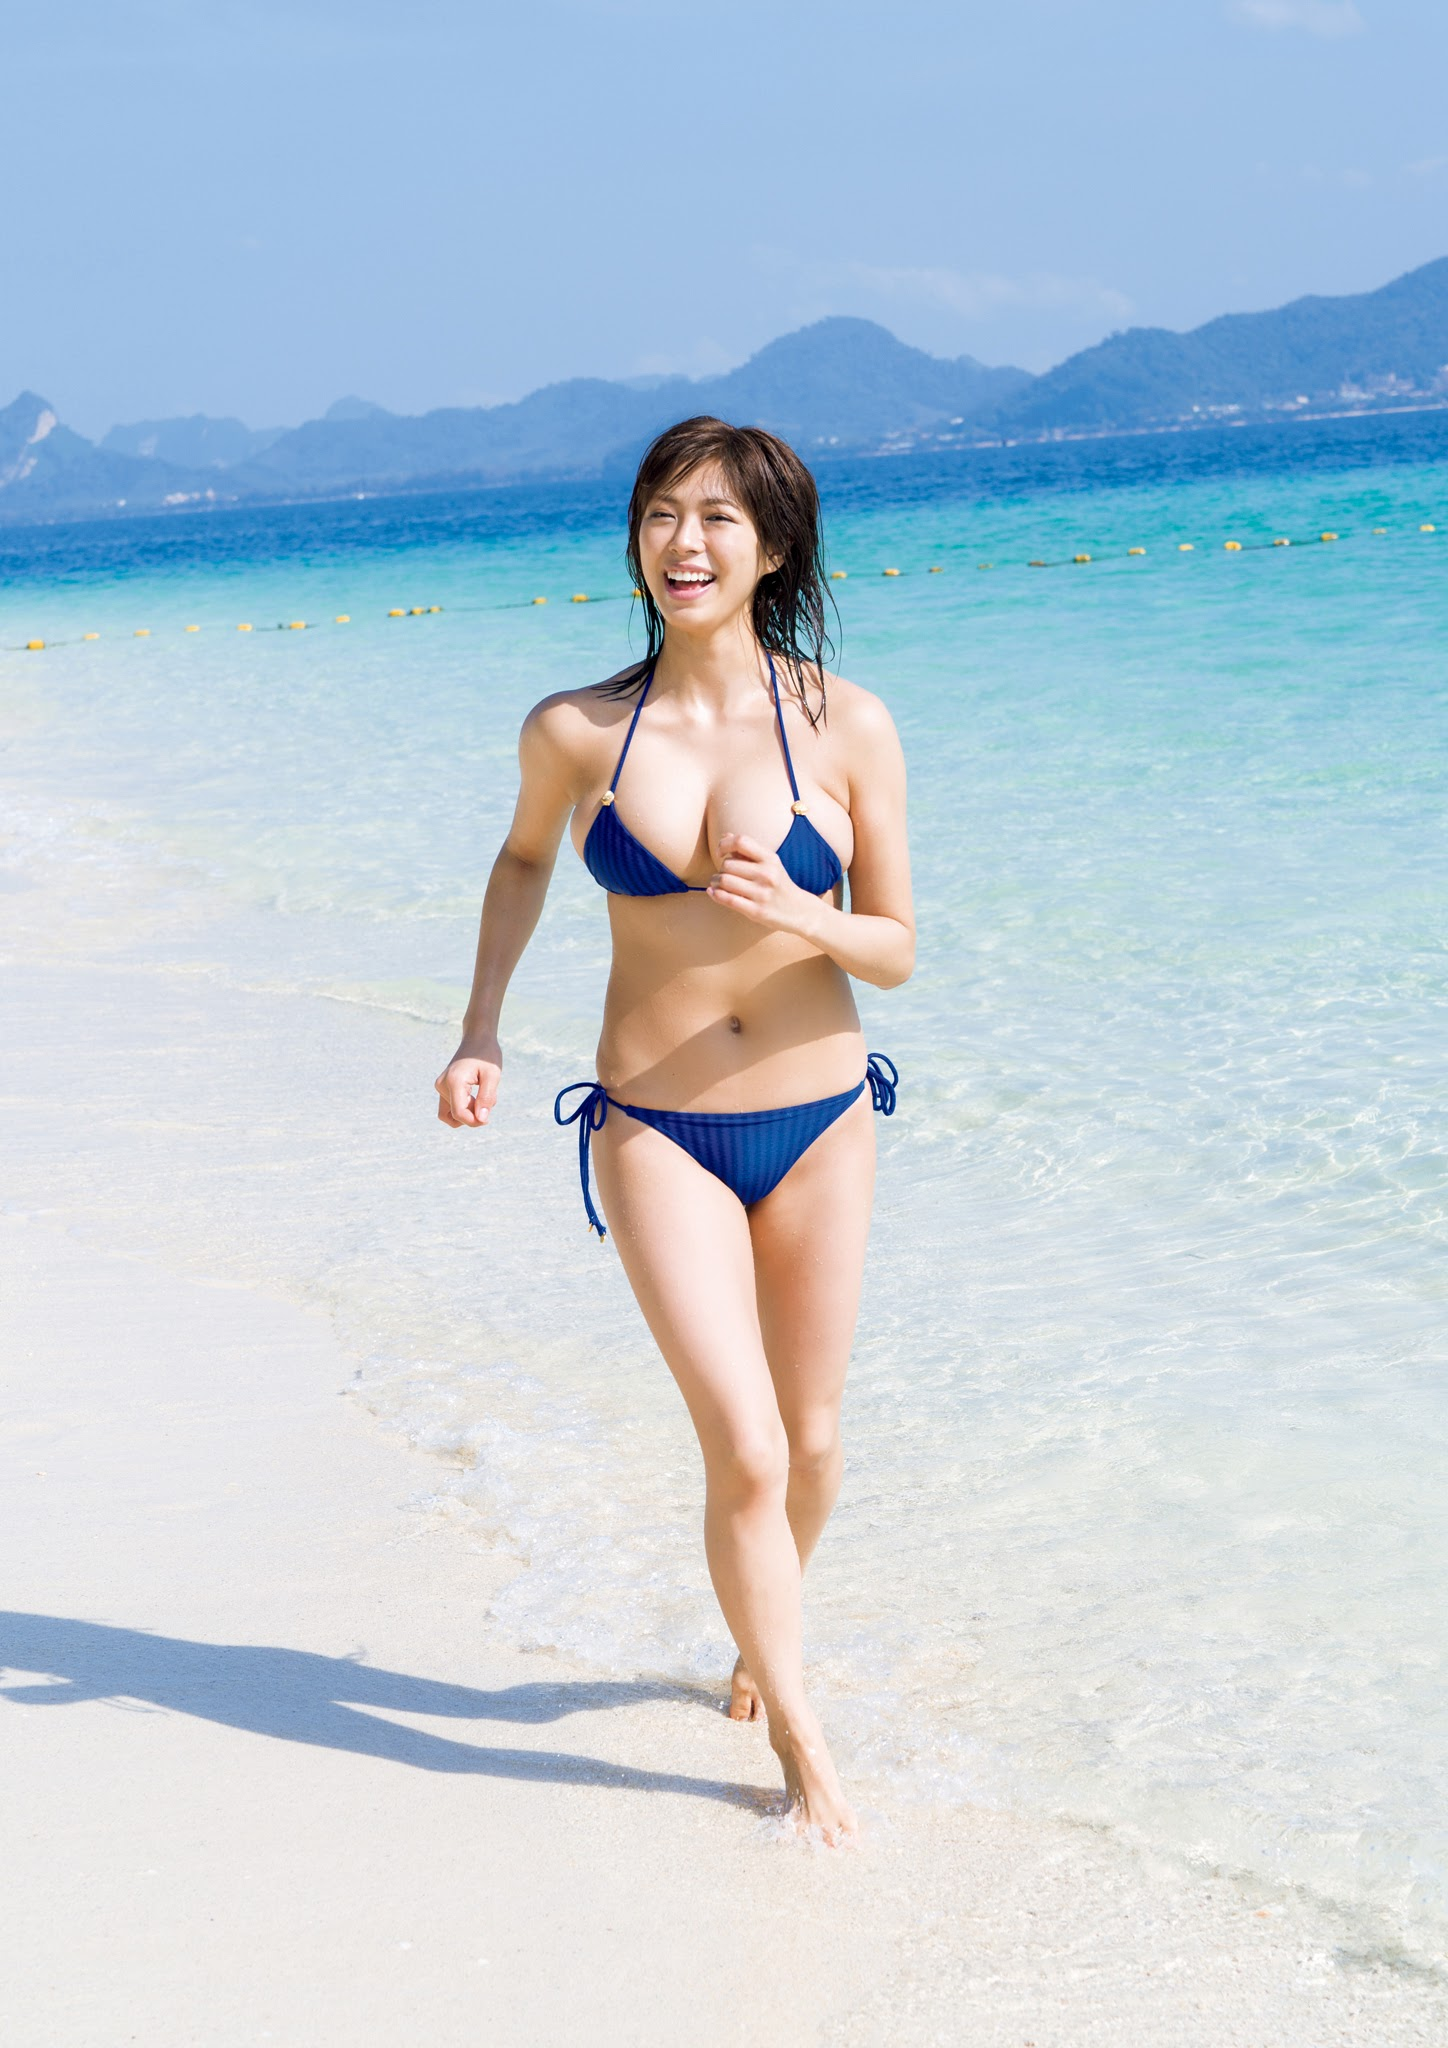 Super body of H cup Minami Wachi 2020 that exposes body and mind in tropical Thailand013